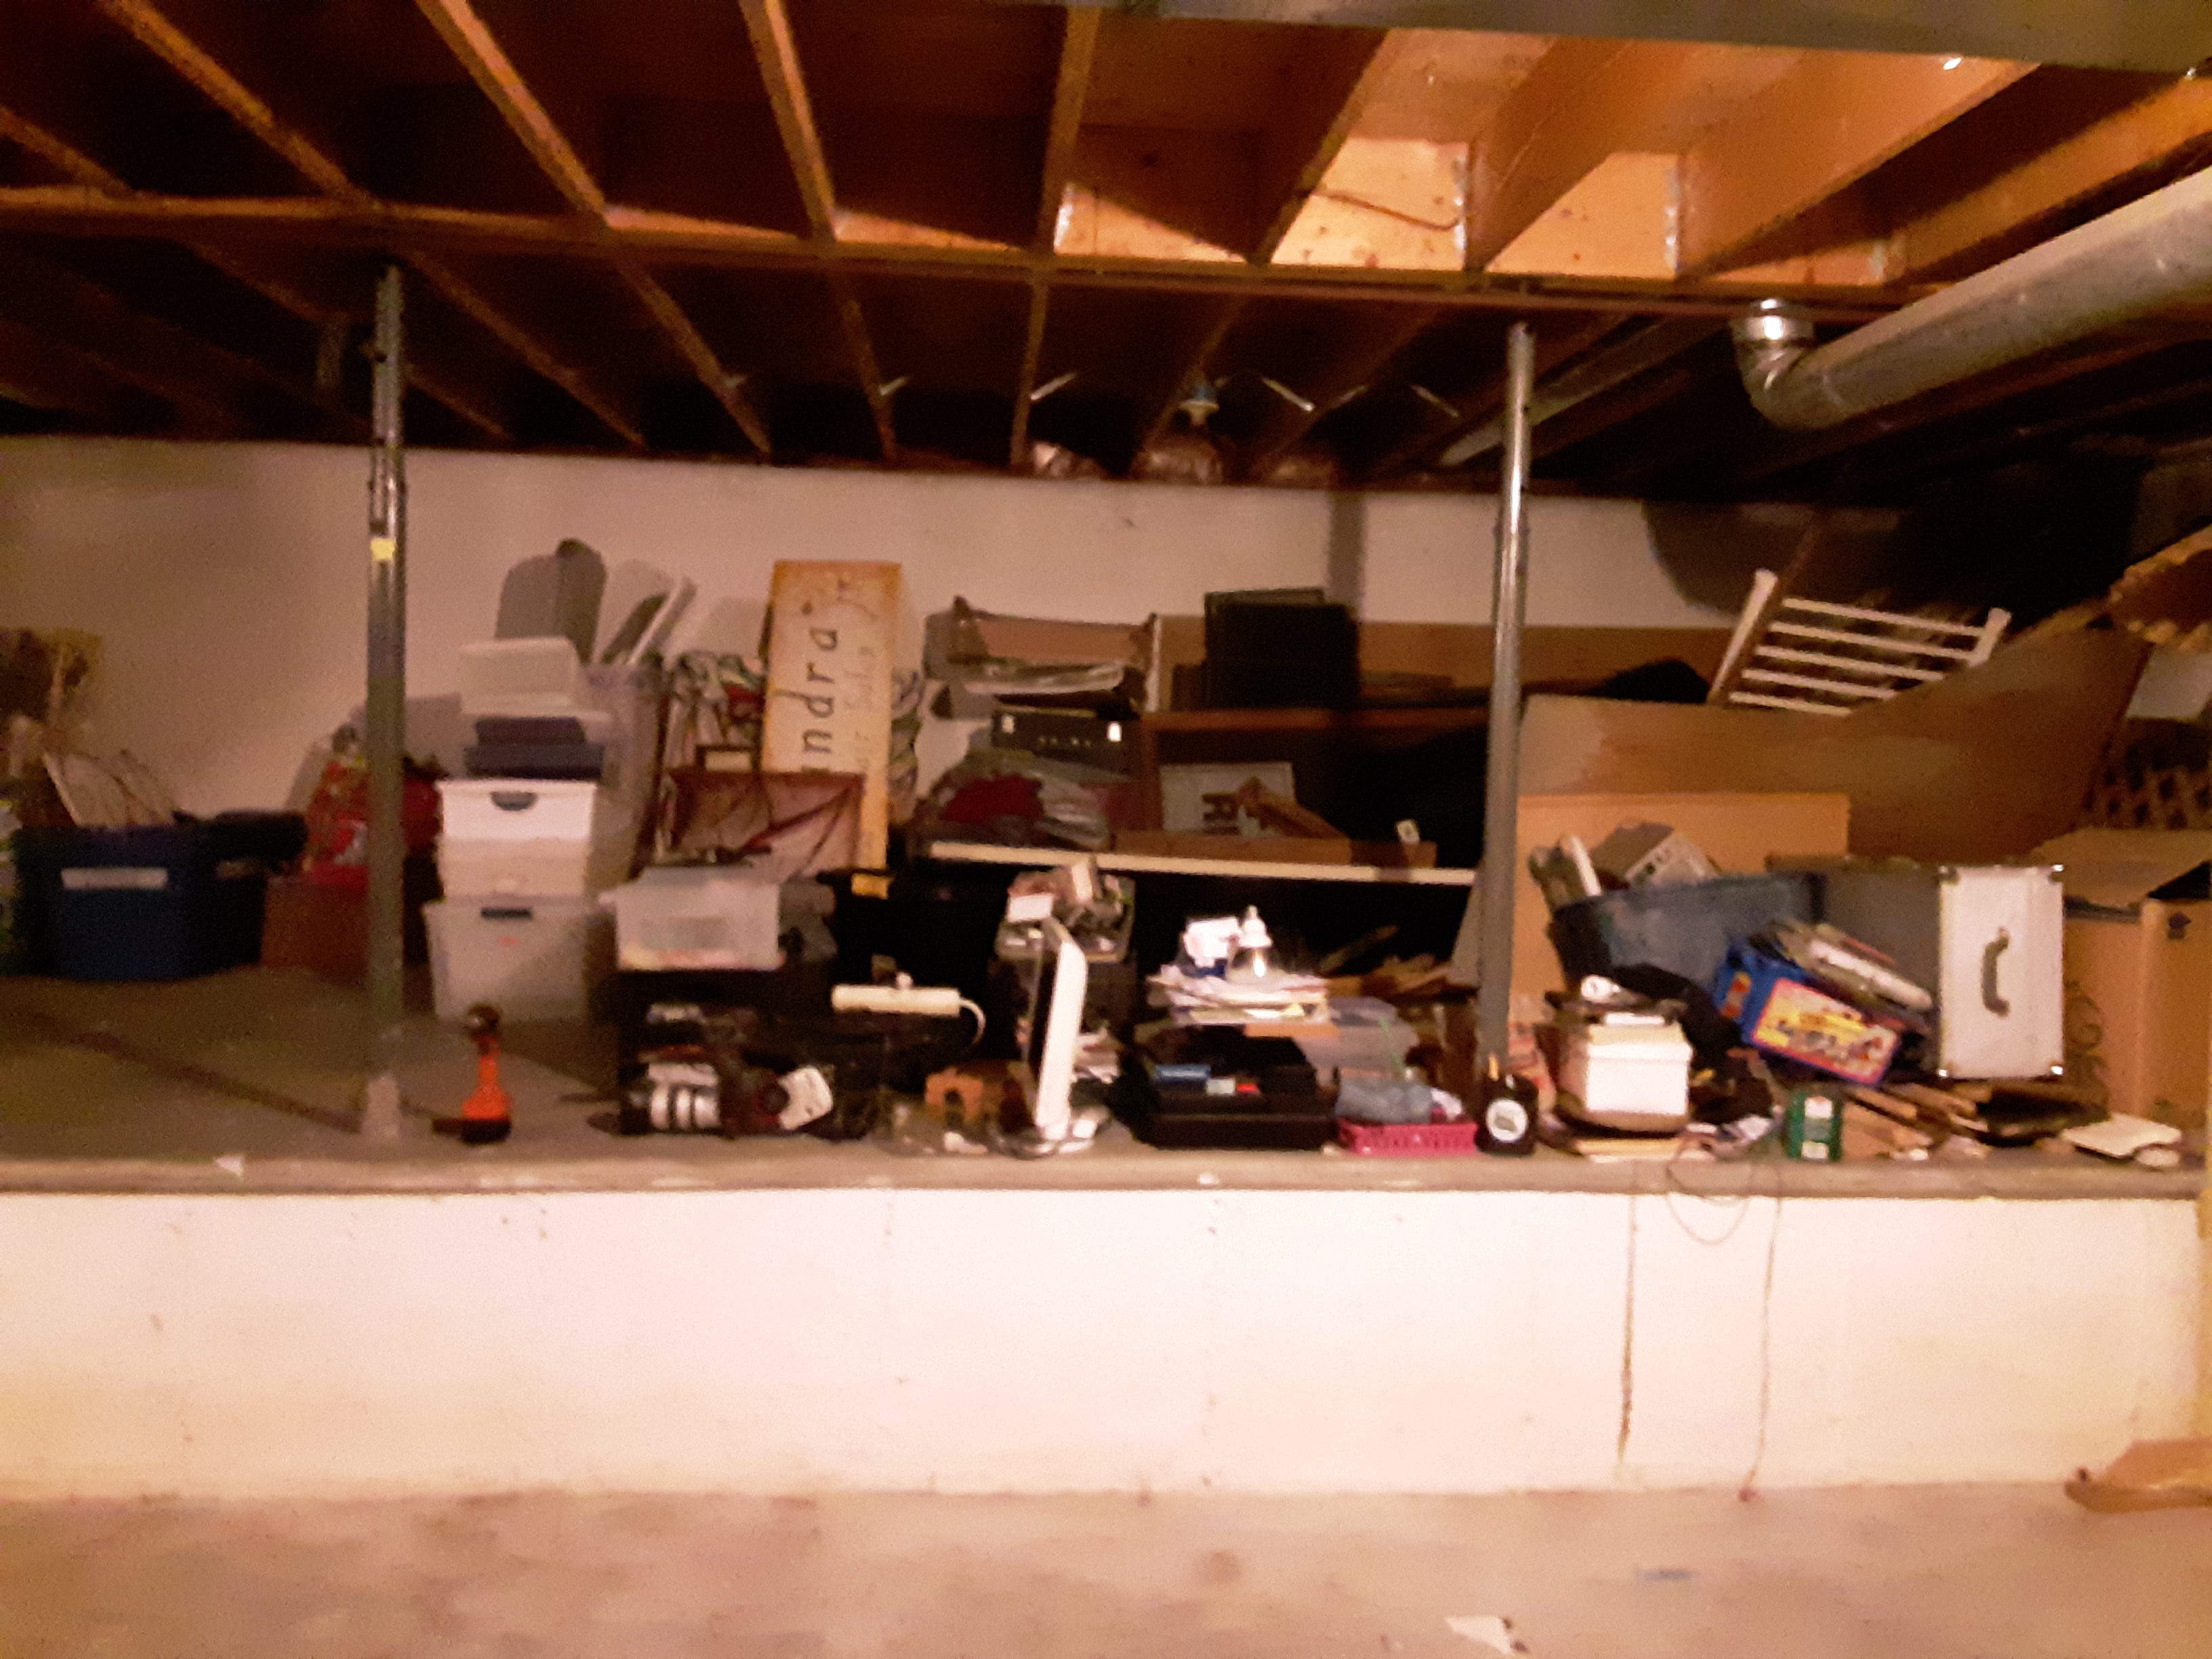 Part of the basement before we organized it